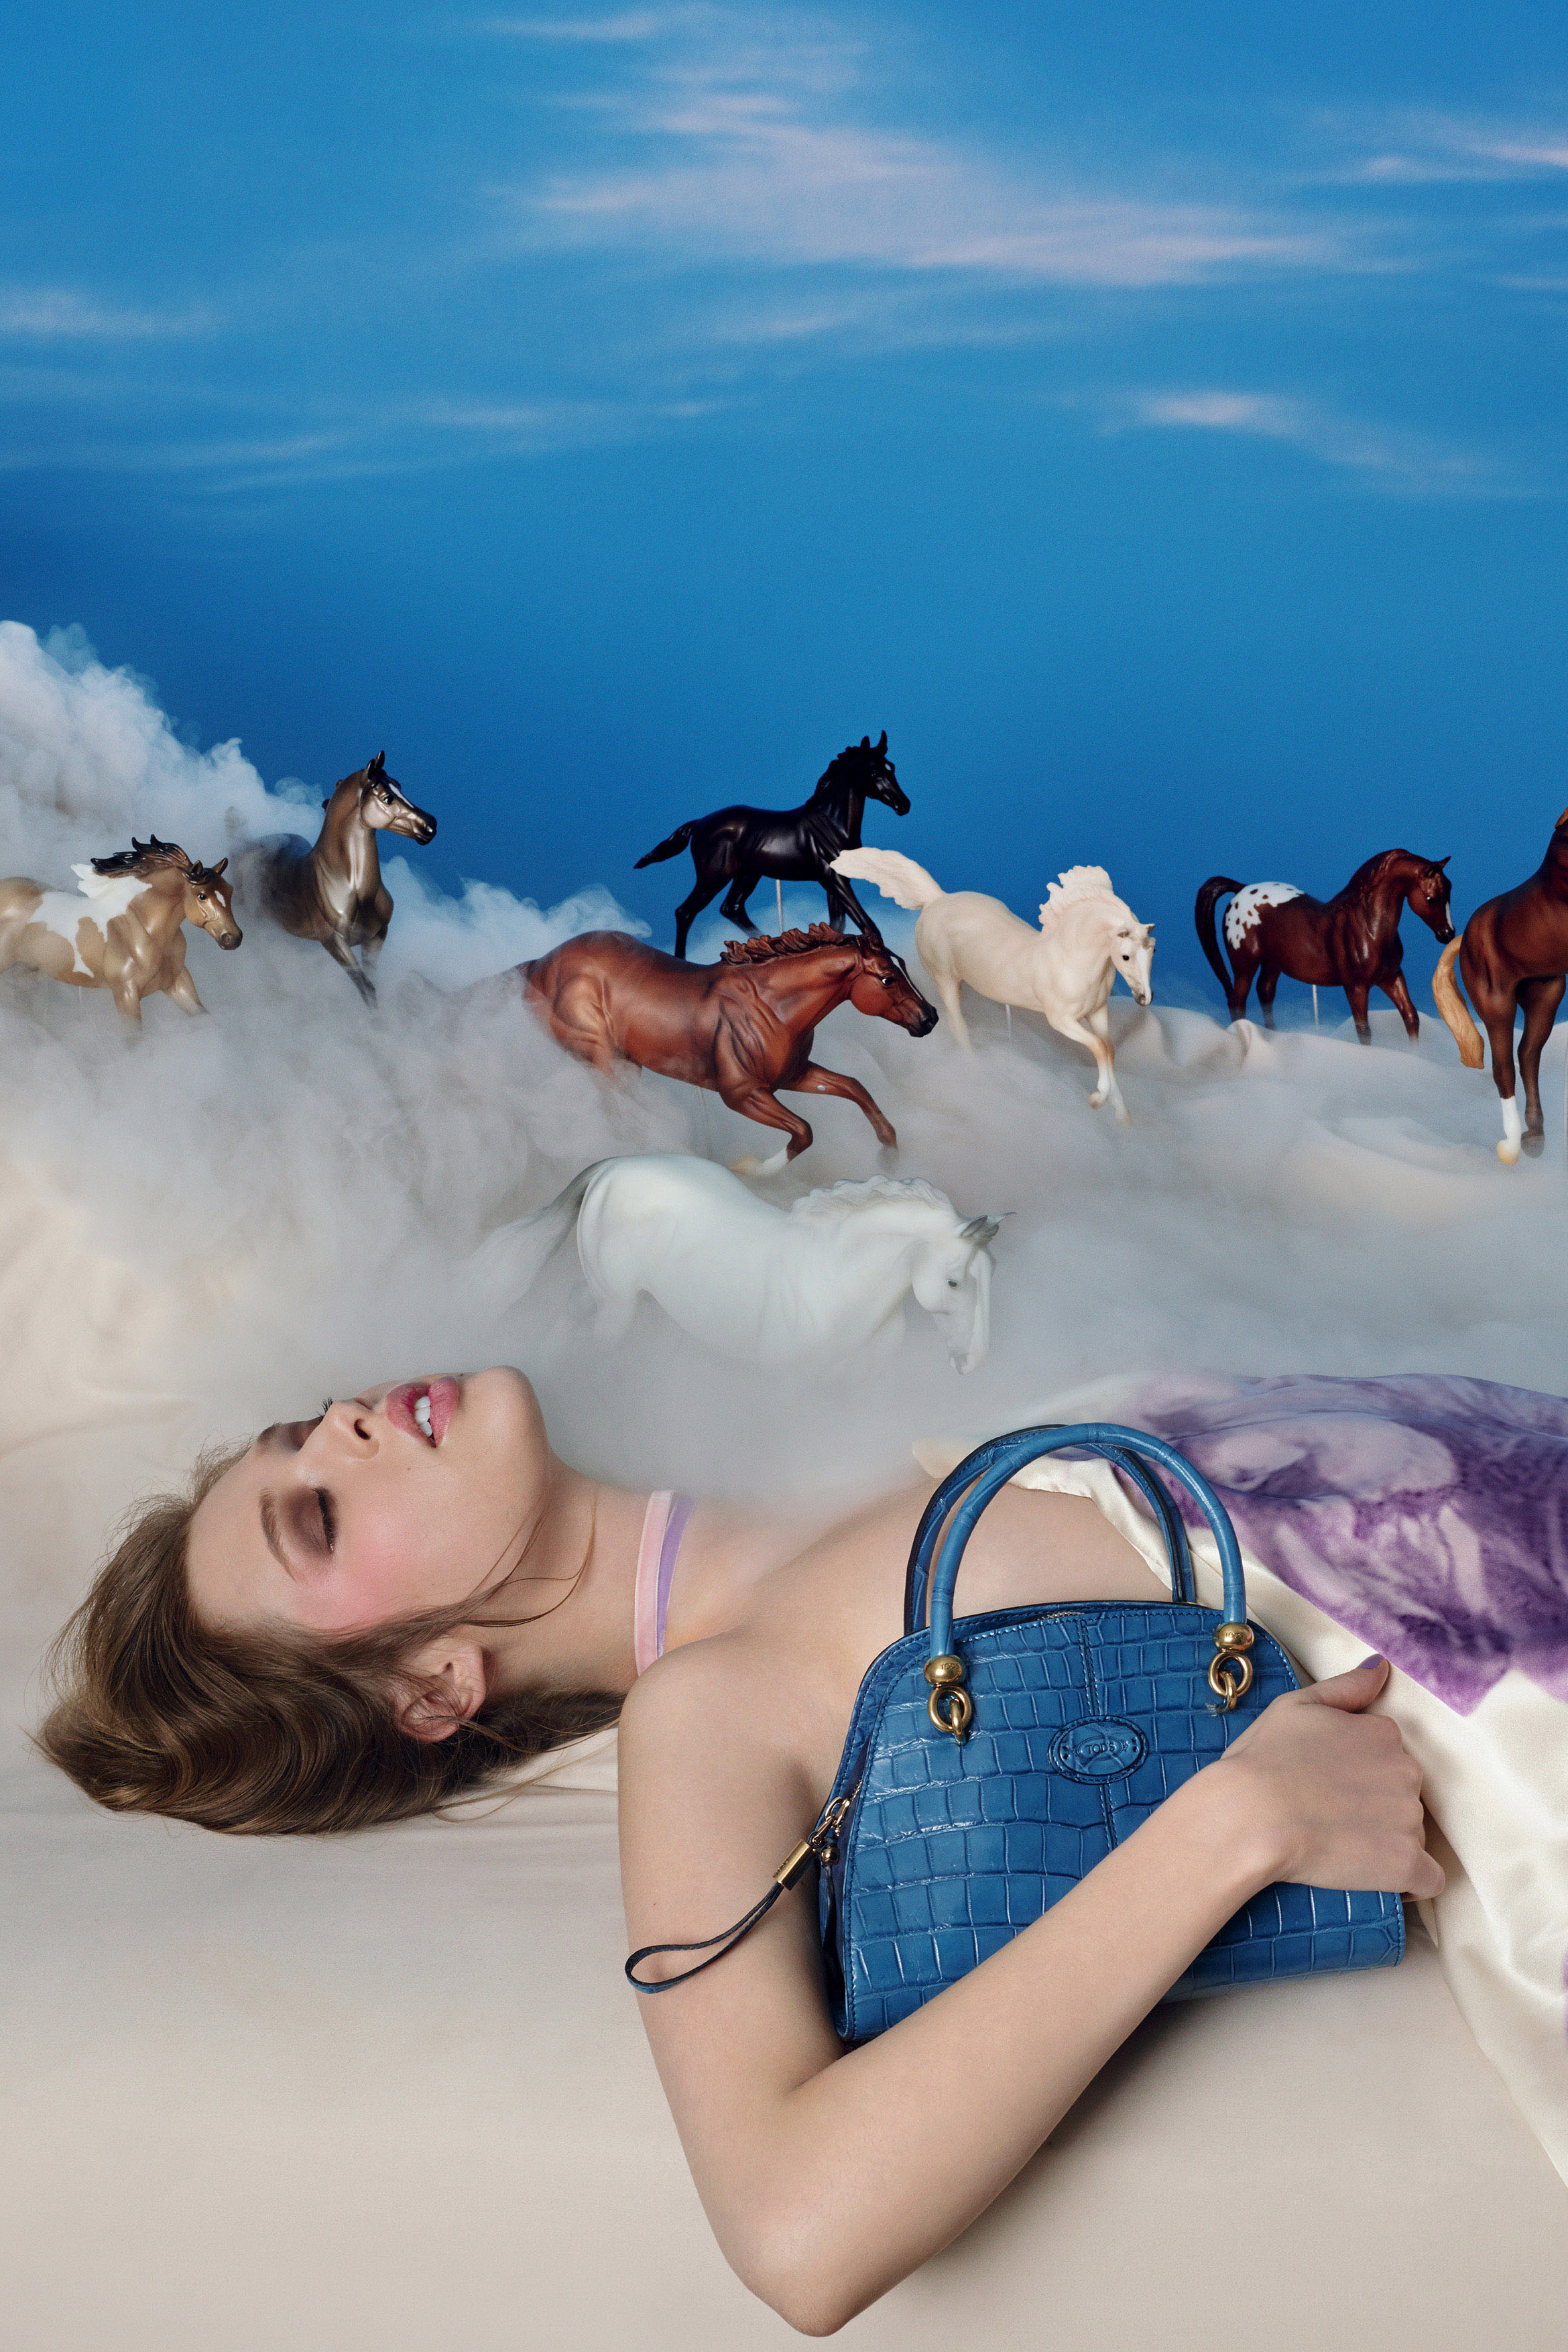 tods-pop-touch-by-david-lachapelle-00